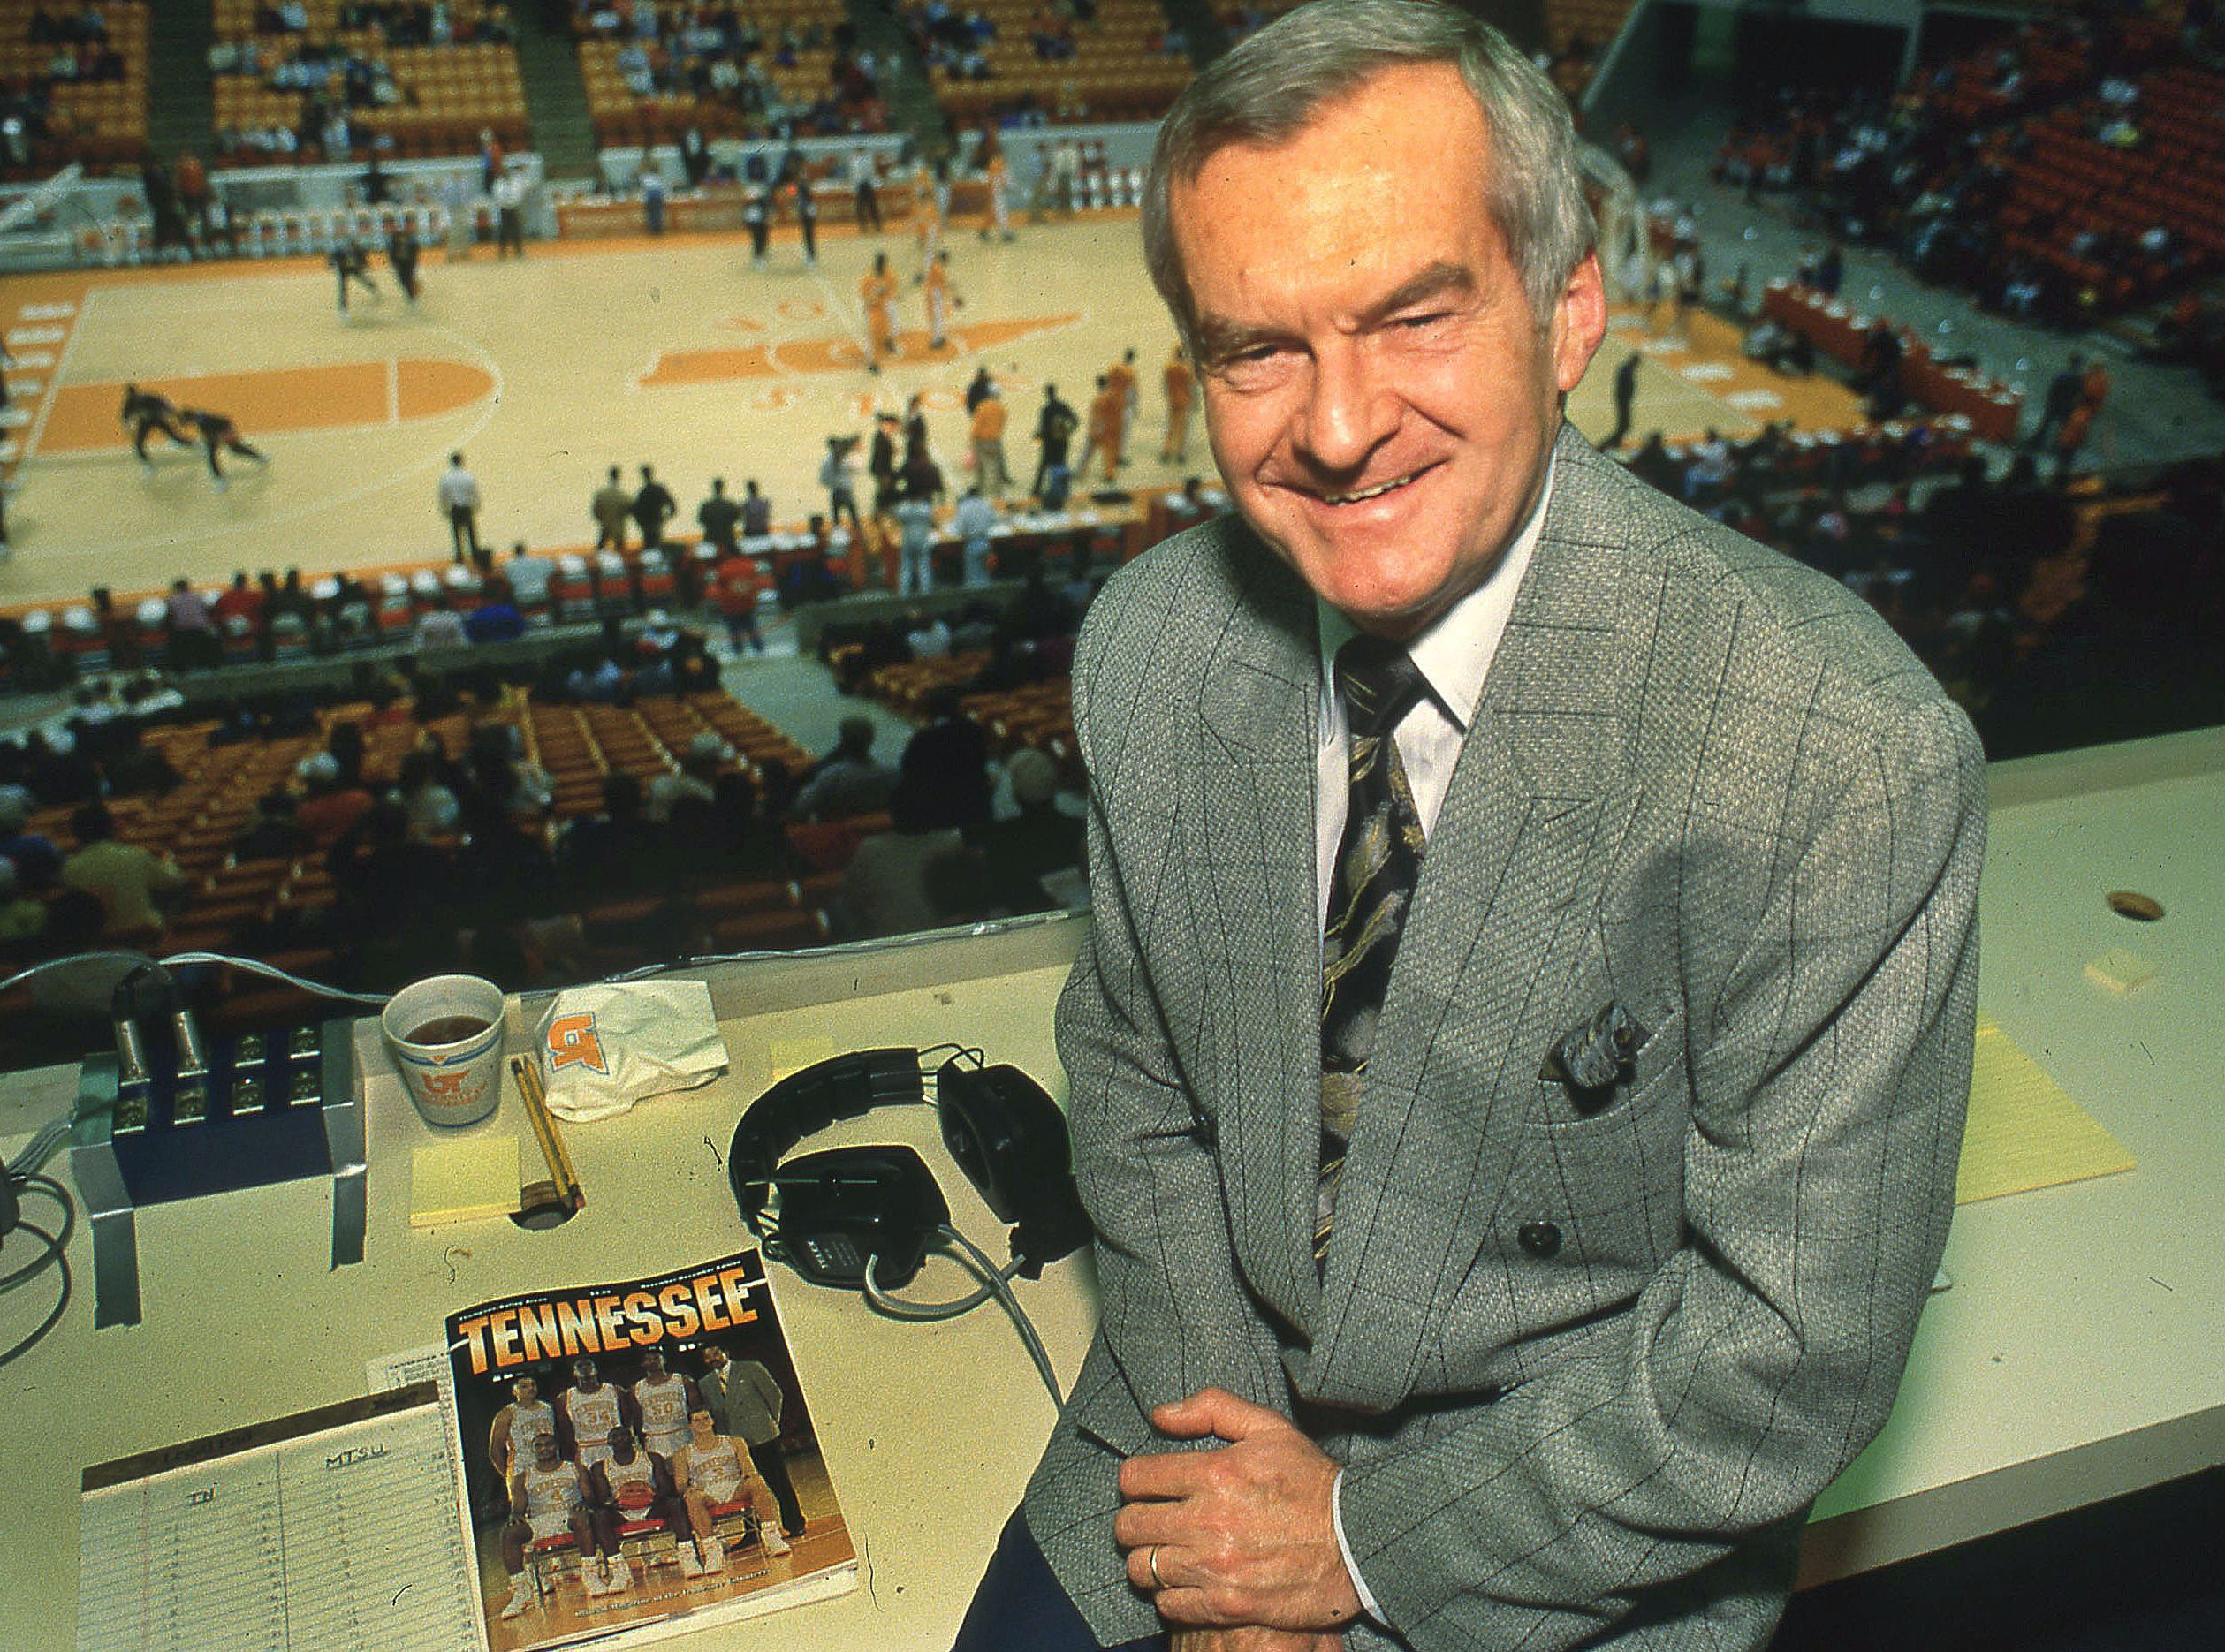 John Ward at Thompson-Boling Arena Dec. 5, 1991.